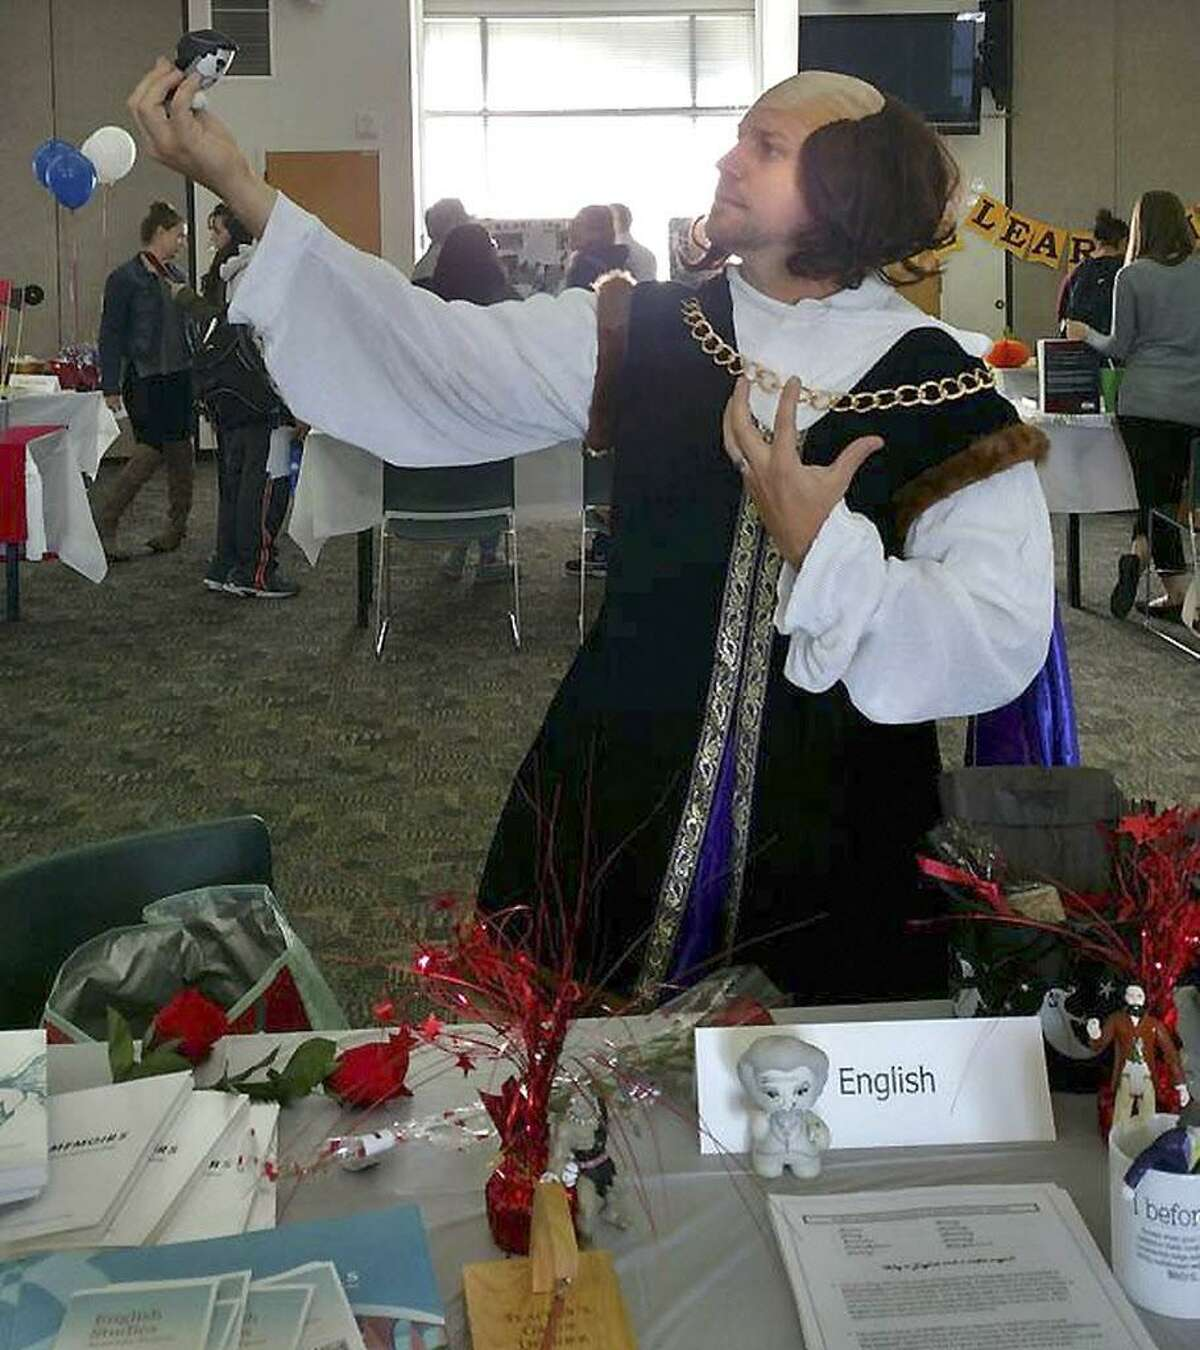 Middlesex Community College hosted a festive career and resource fair for local college and high school students to explore specialized job and program options Oct. 11. Exhibits were entered into a competition for the best display. Here, an English student shows off his dramatic skills.